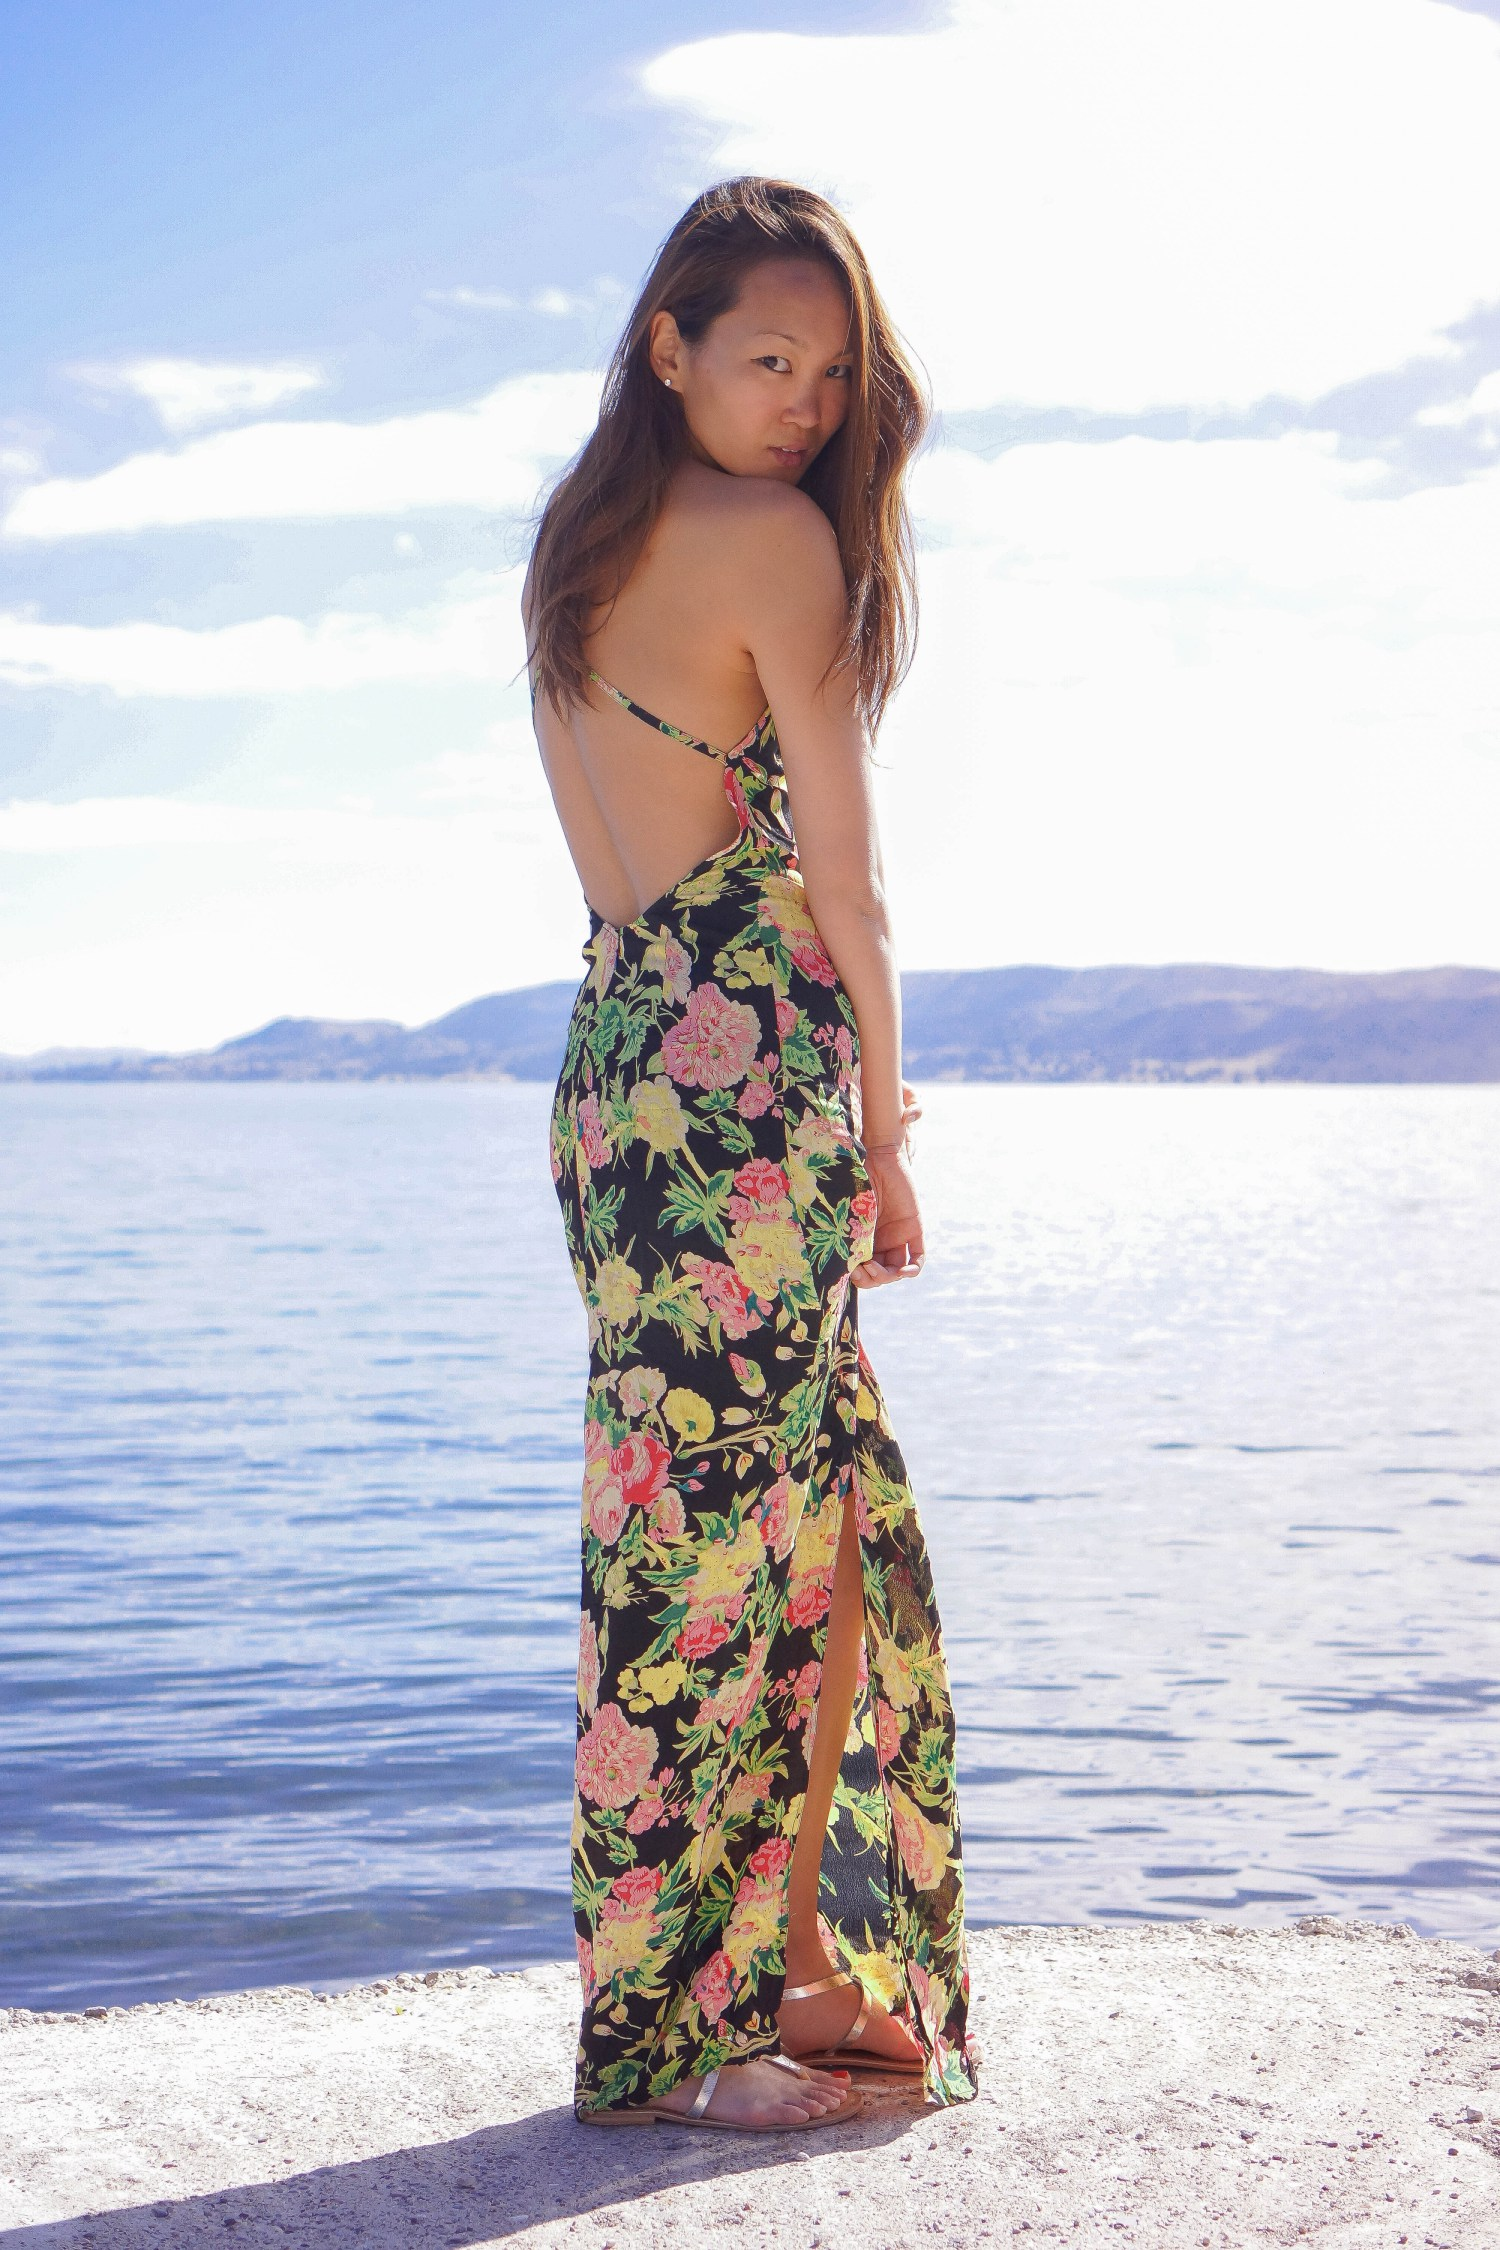 mariko kuo in topshop dress at lake titicaca peru